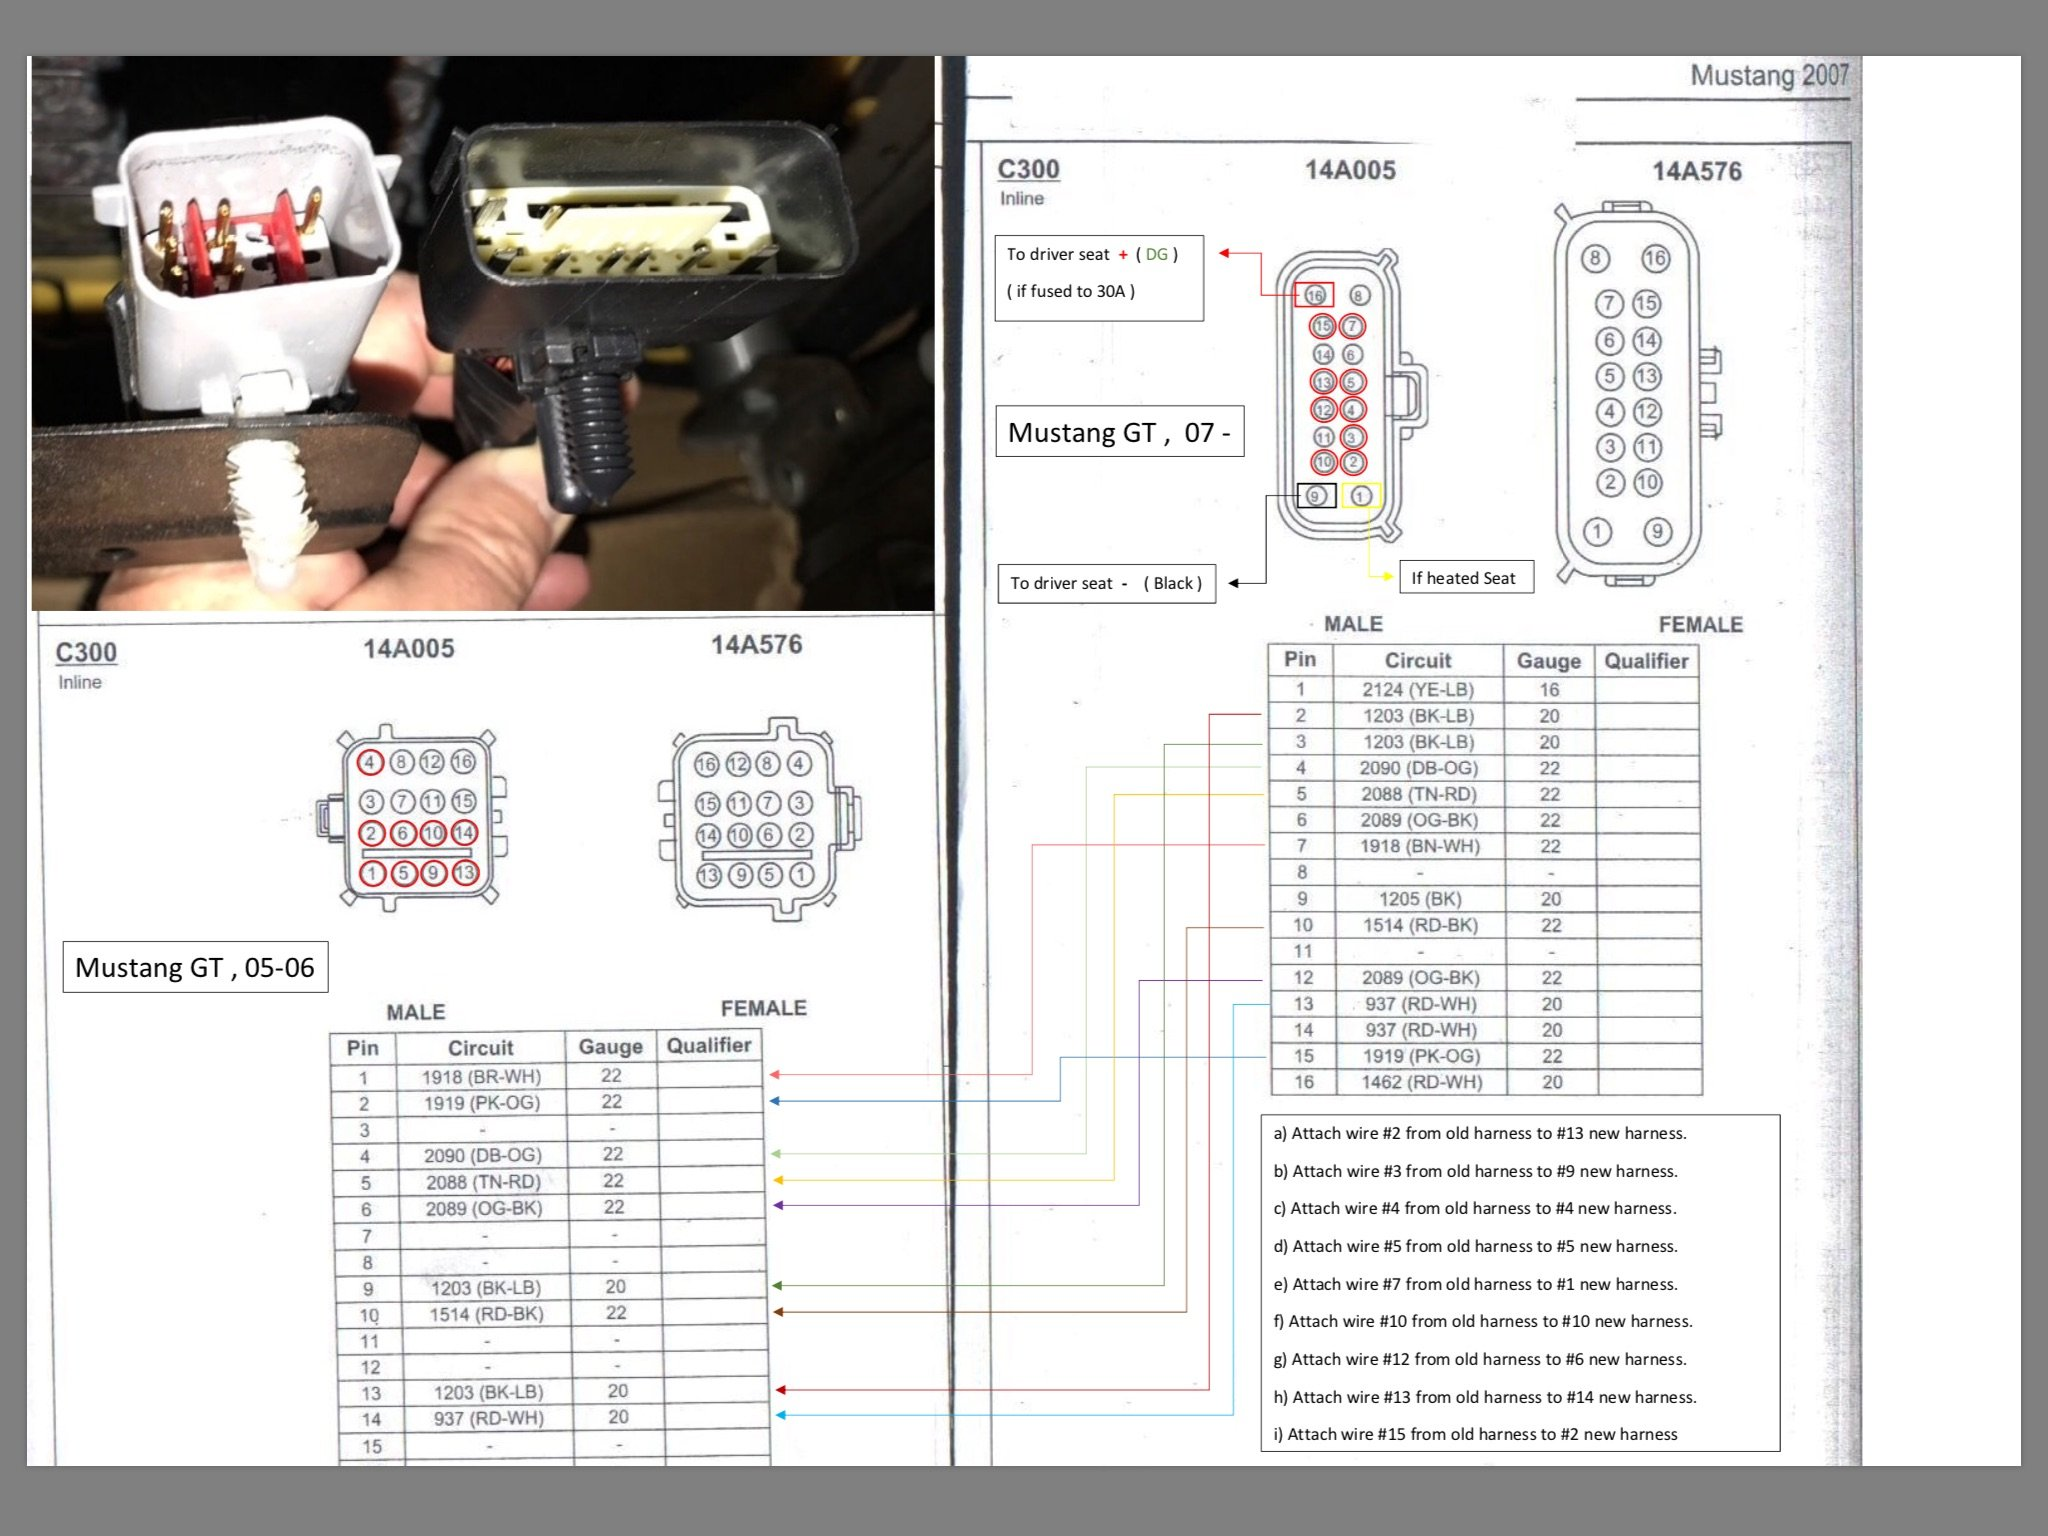 Mustang Gt Passenger Seat Conversion To Power Ford Forum Wiring Diagram 2006 Click Image For Larger Version Name 6b1caf2a 7952 402a A973 3da7b118c6c3